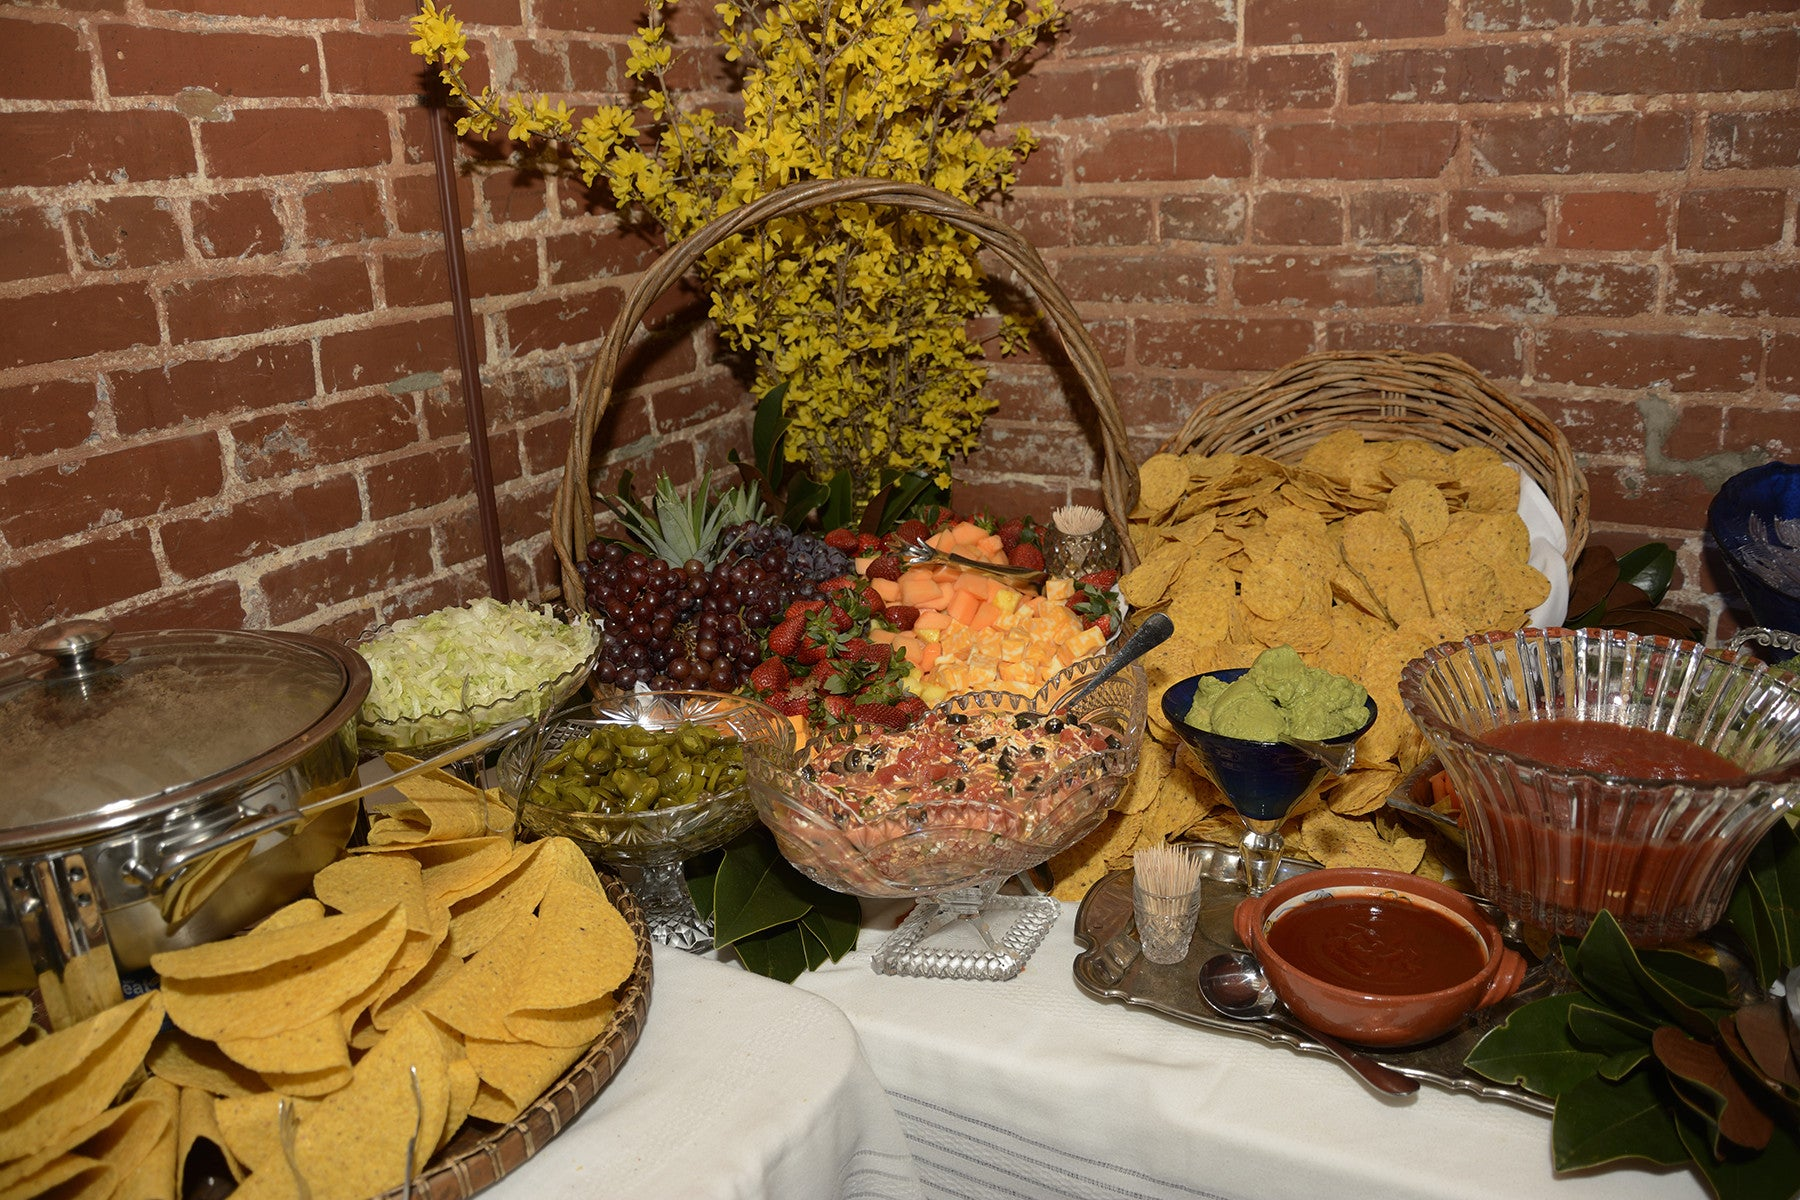 ShopMucho Owner Angelique Sloan 3 year Mexican theme wedding anniversary woodruff fontaine house